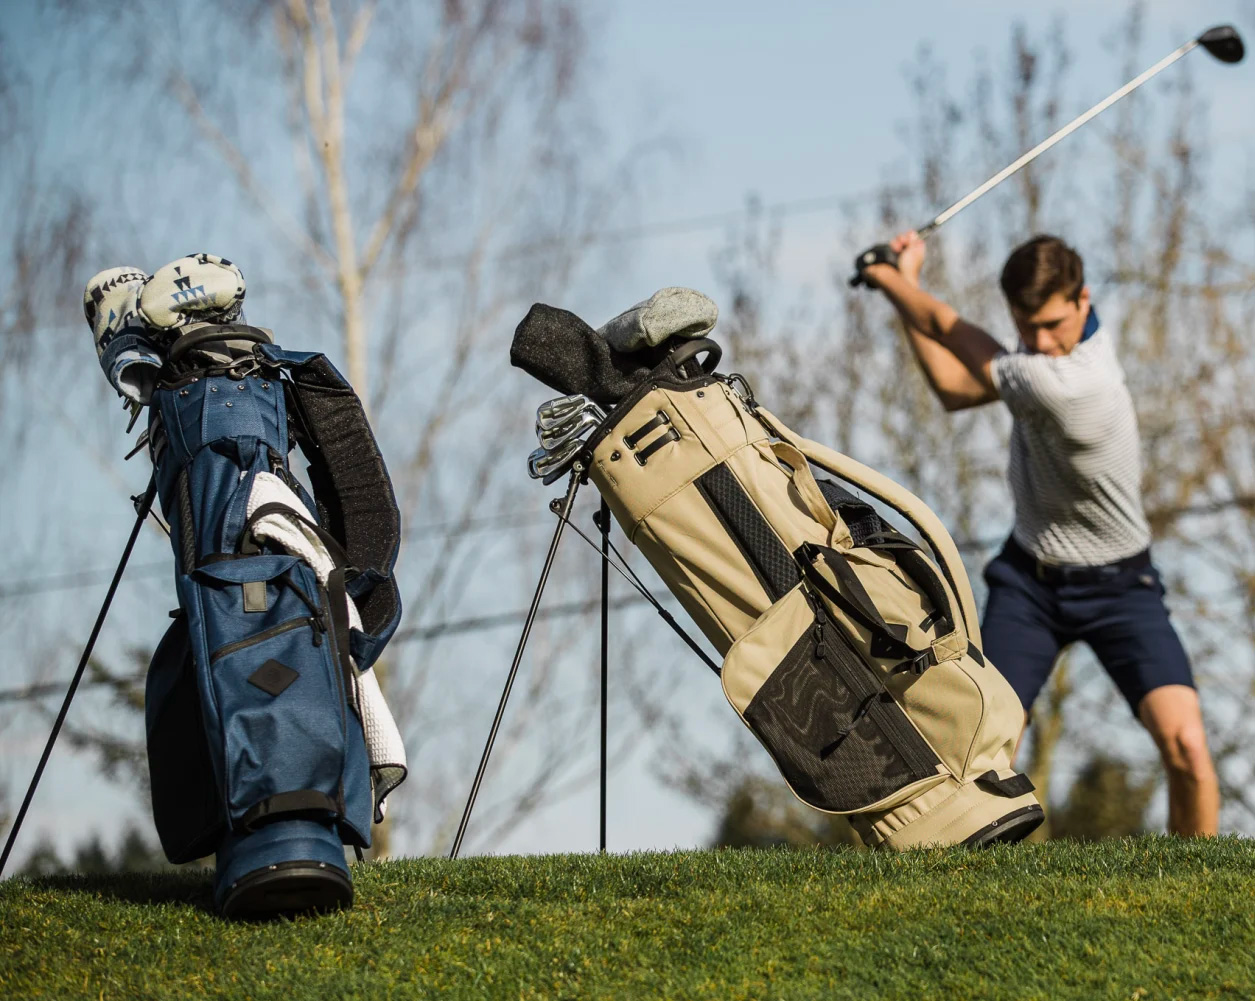 Jones' Lightweight Utility Trouper is the New Golf Bag Dad Deserves at werd.com